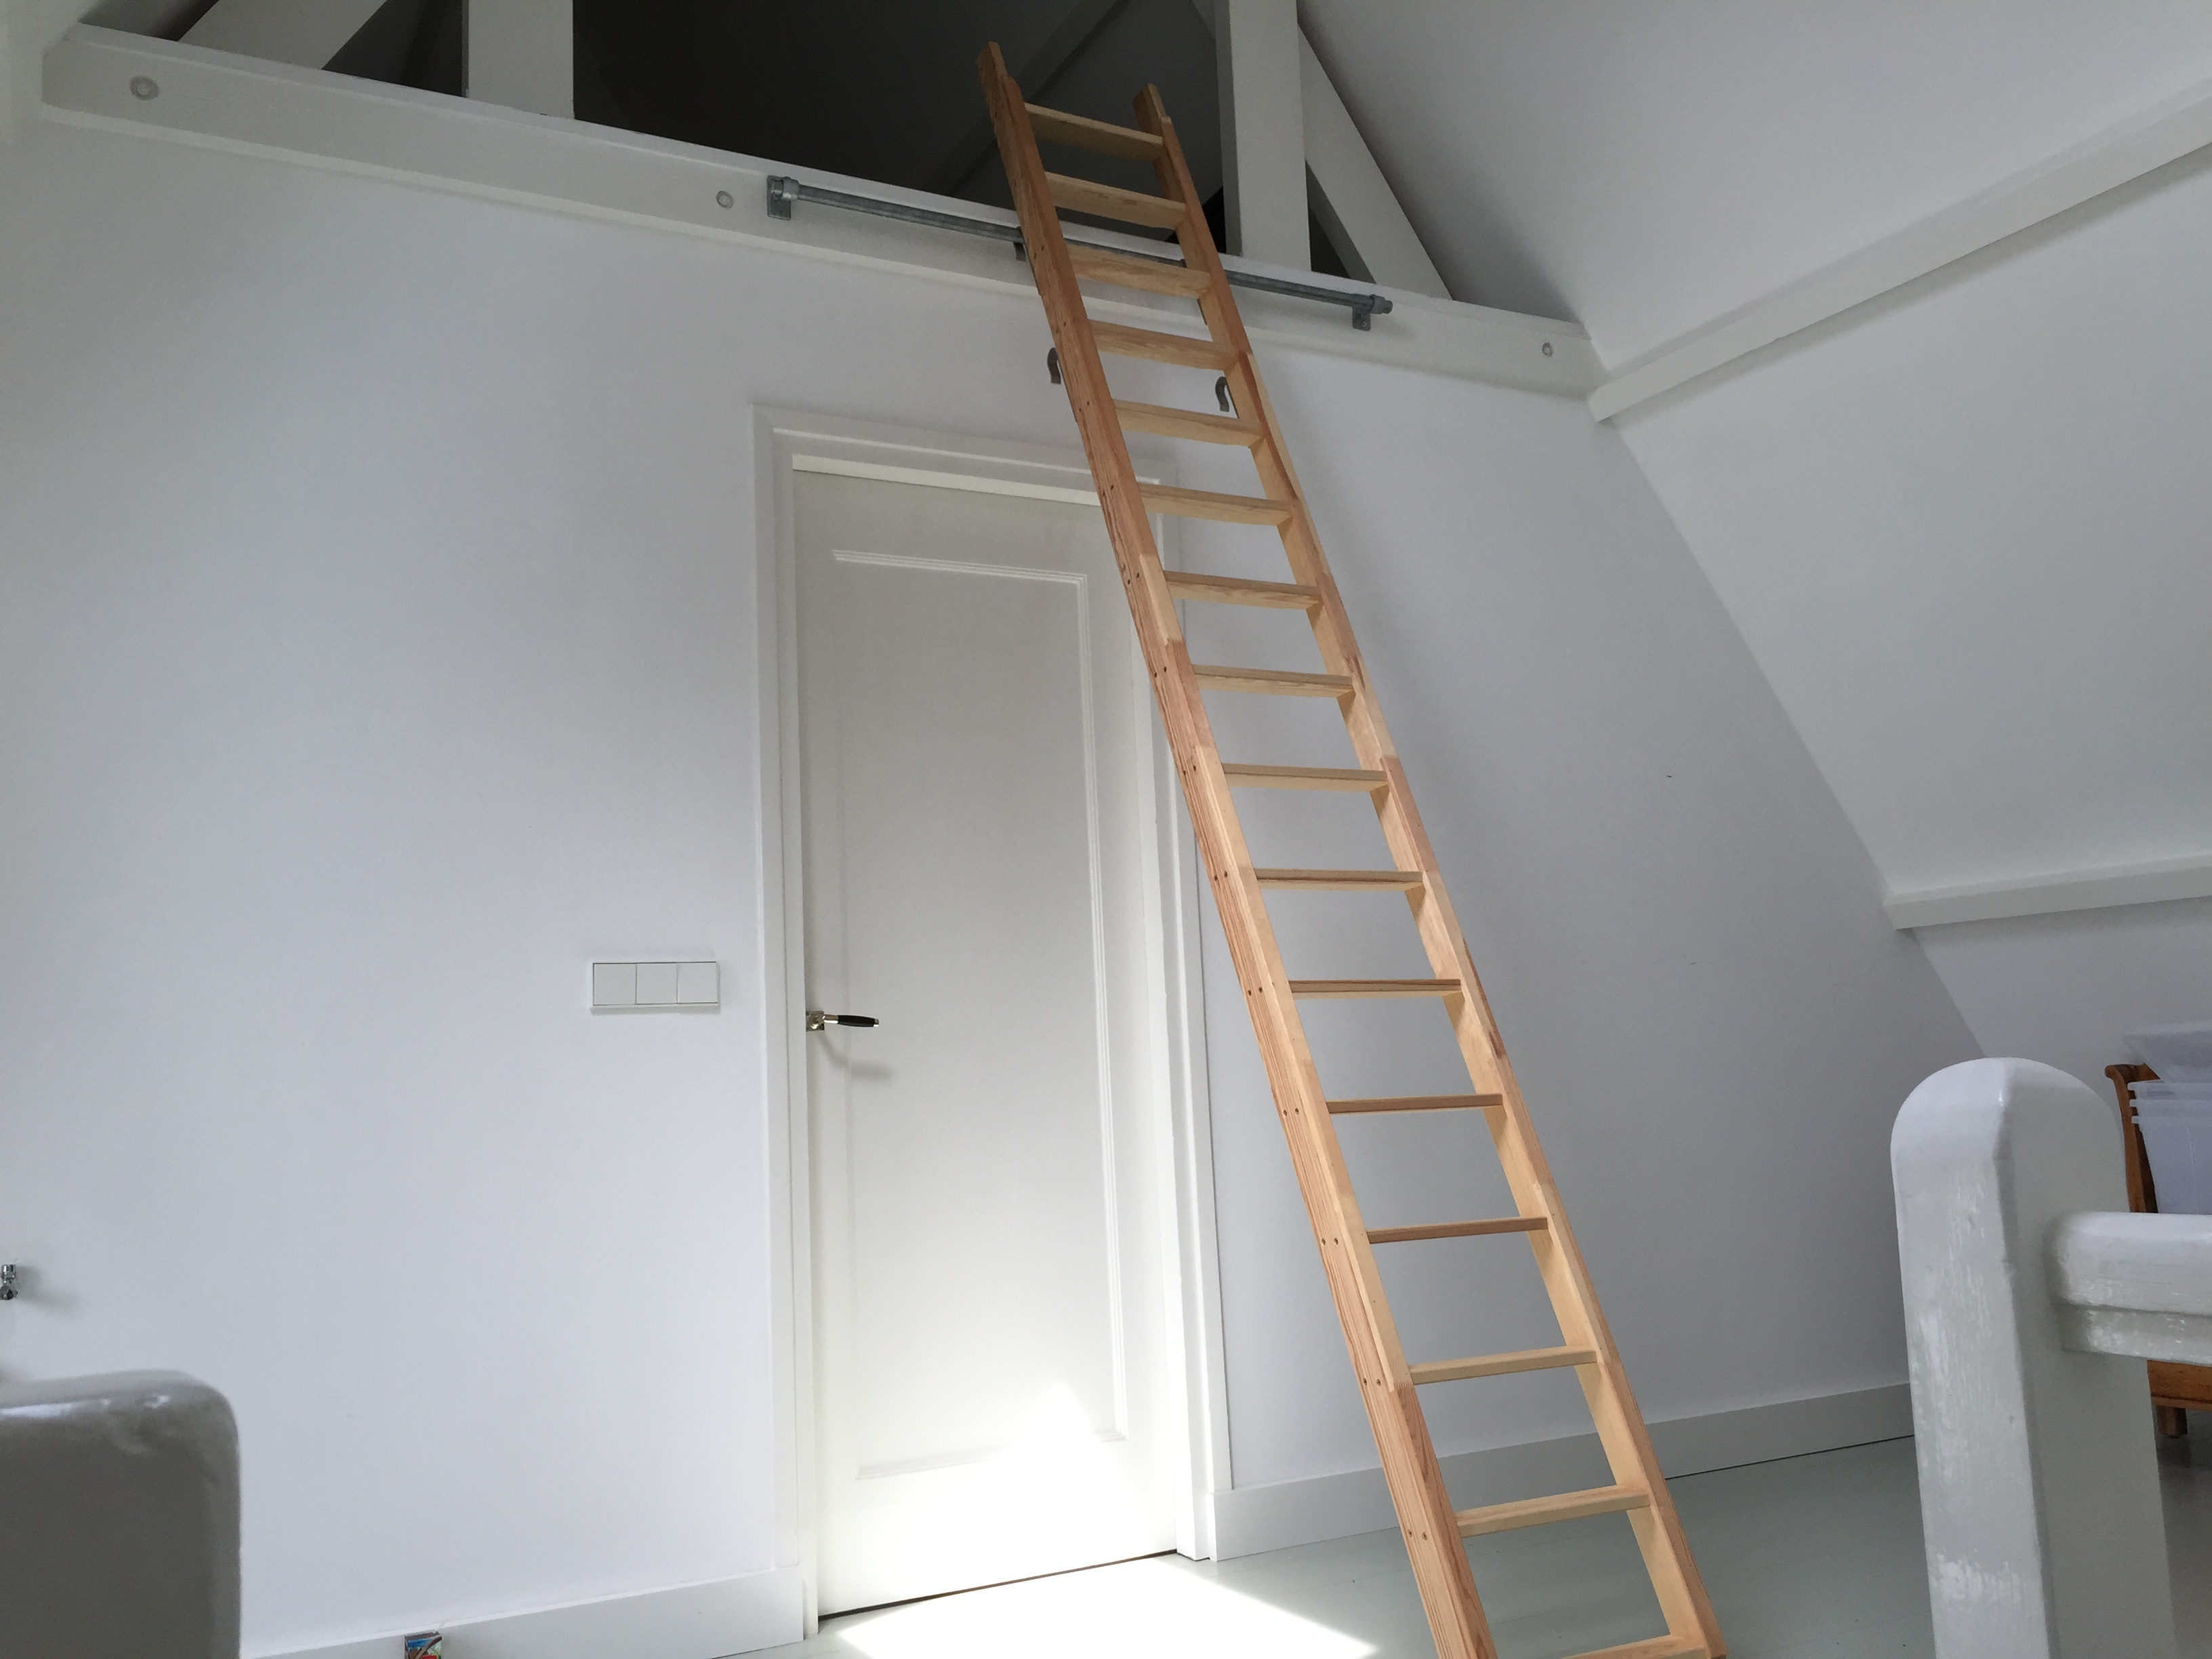 Zolder trap ladder voor de makers - Mezzanine trap ...